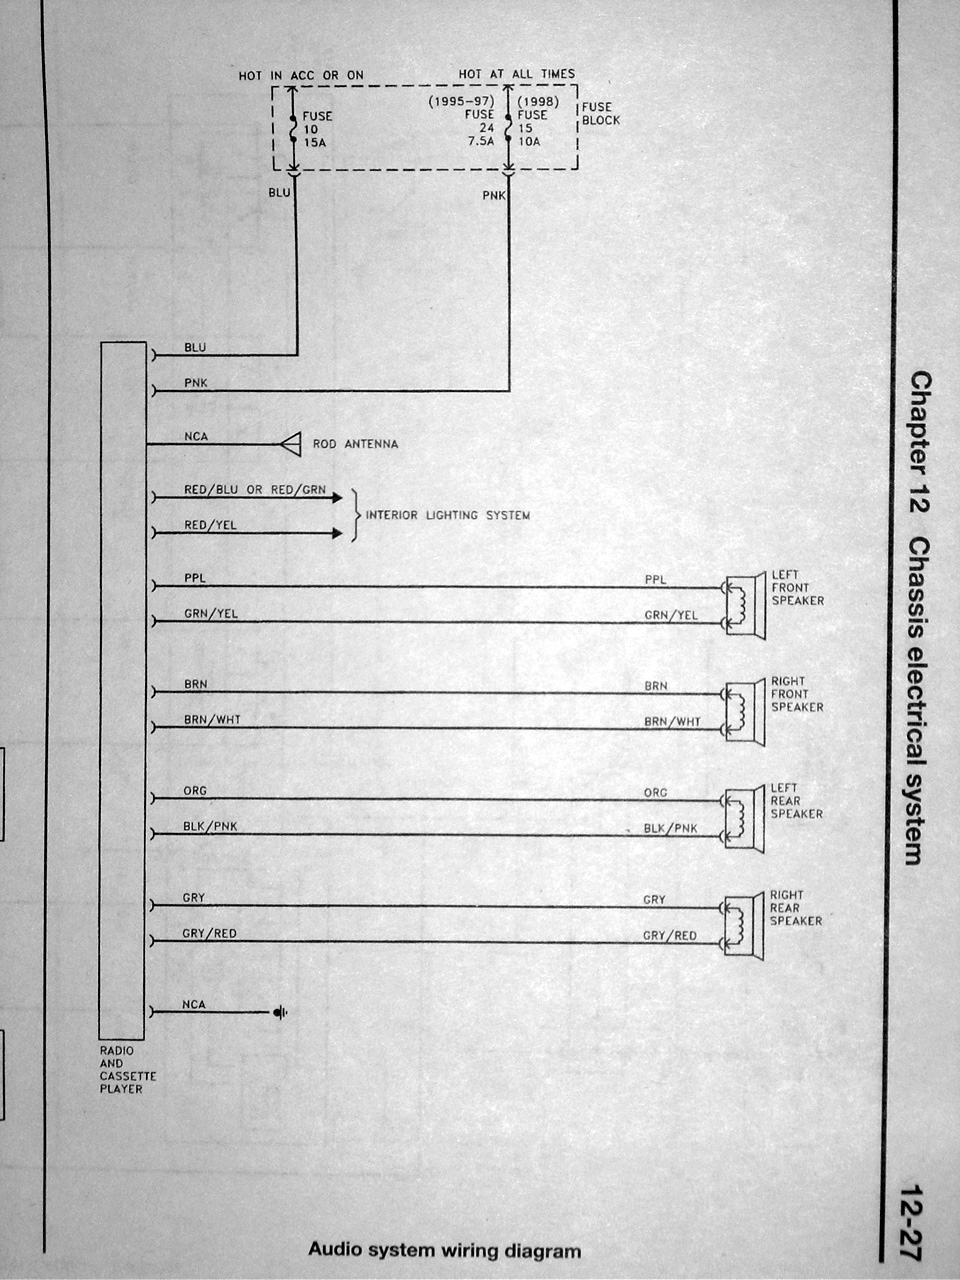 DSC01849 wiring diagram thread *useful info* nissan forum 1998 nissan maxima wiring diagram electrical system at crackthecode.co